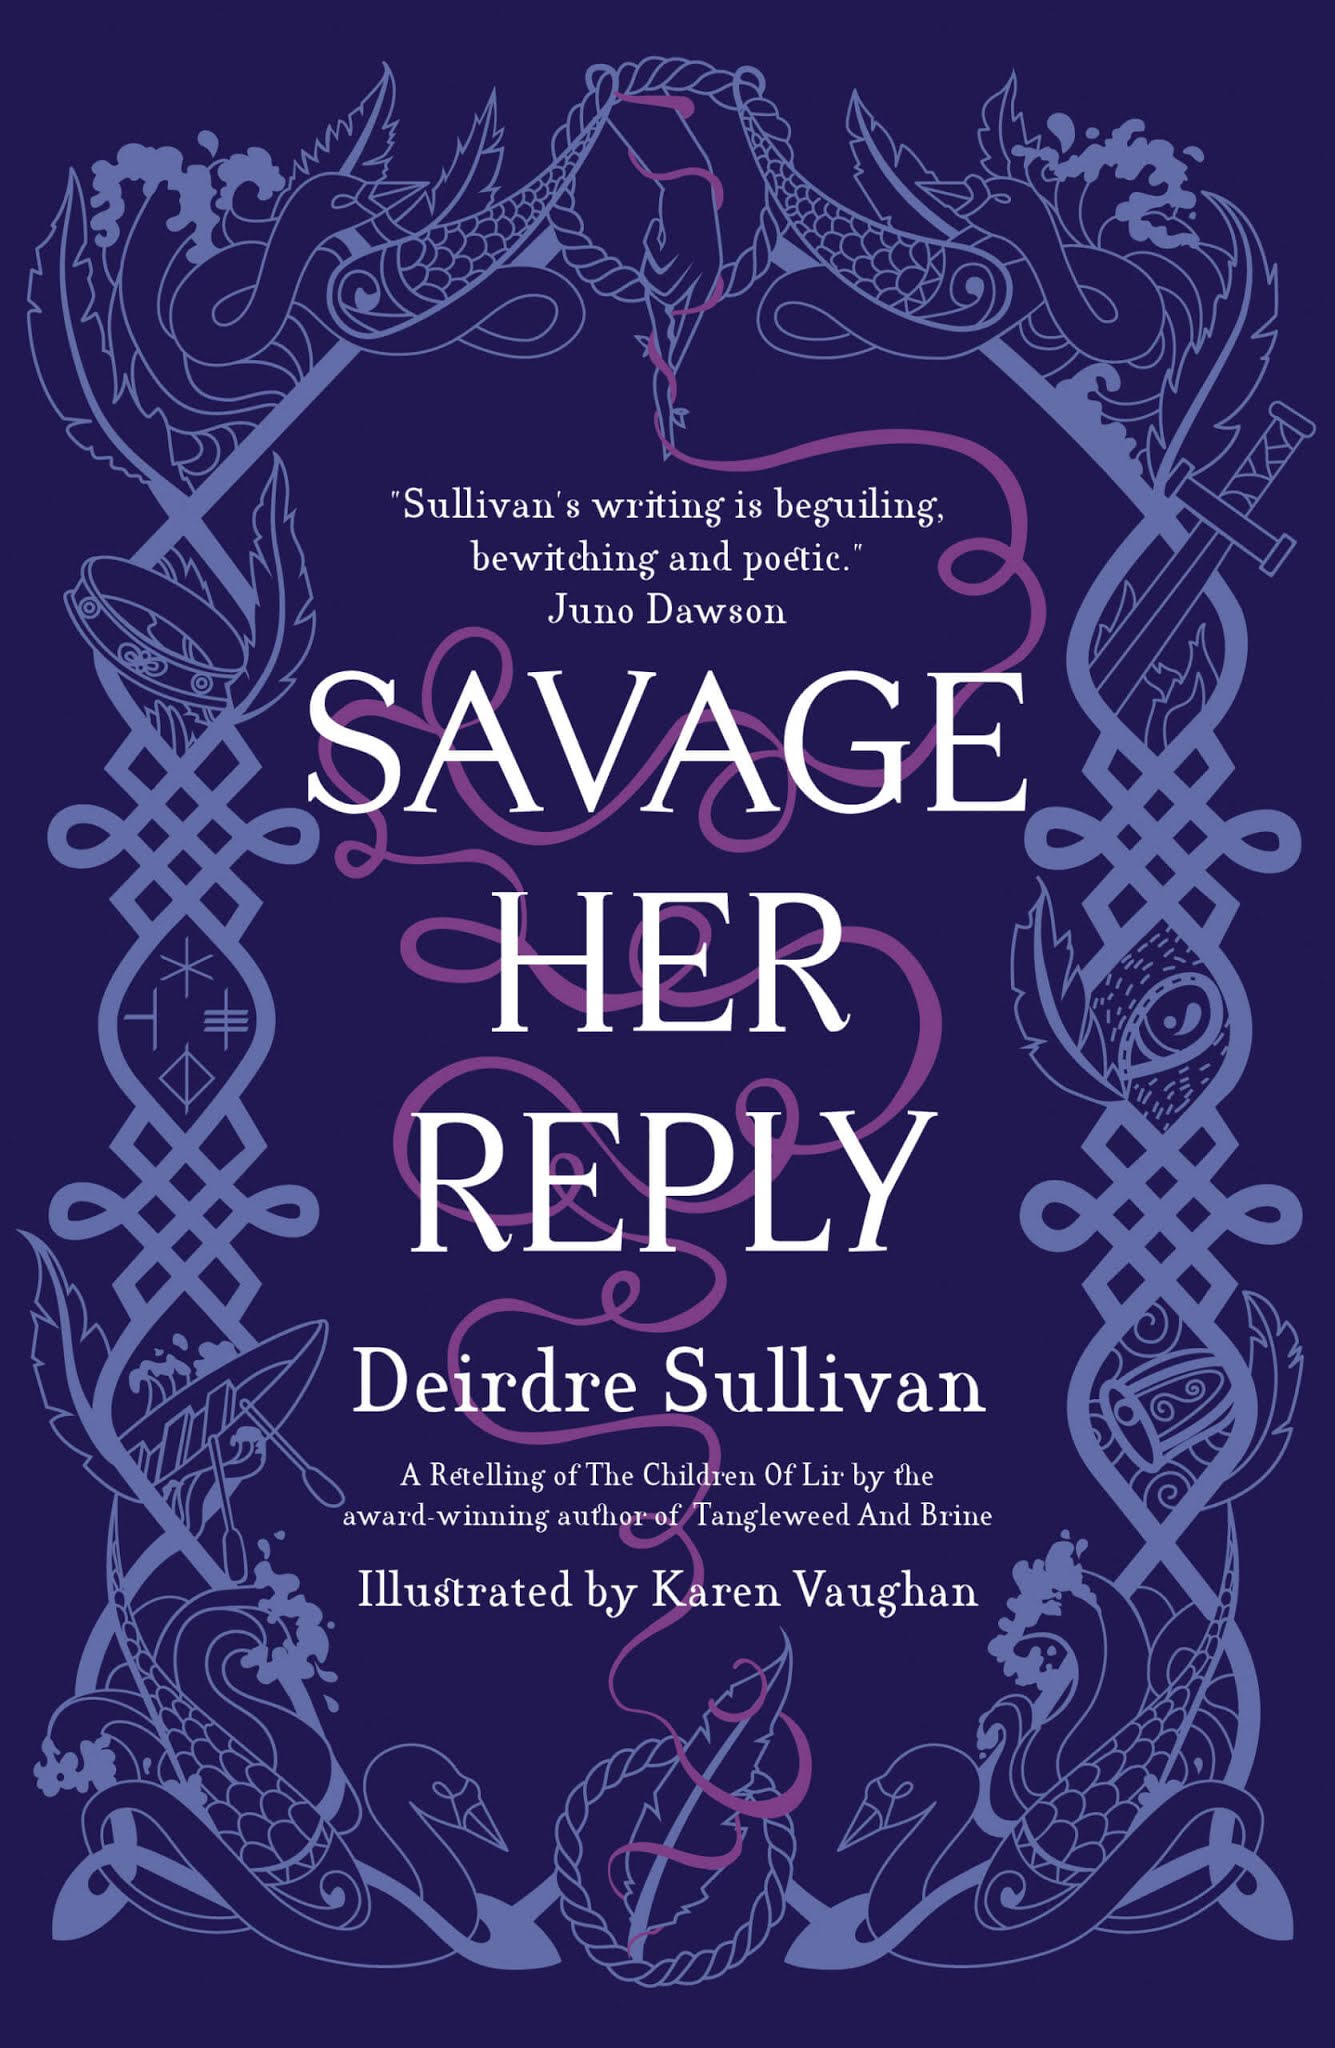 Savage Her Reply by Deirdre Sullivan